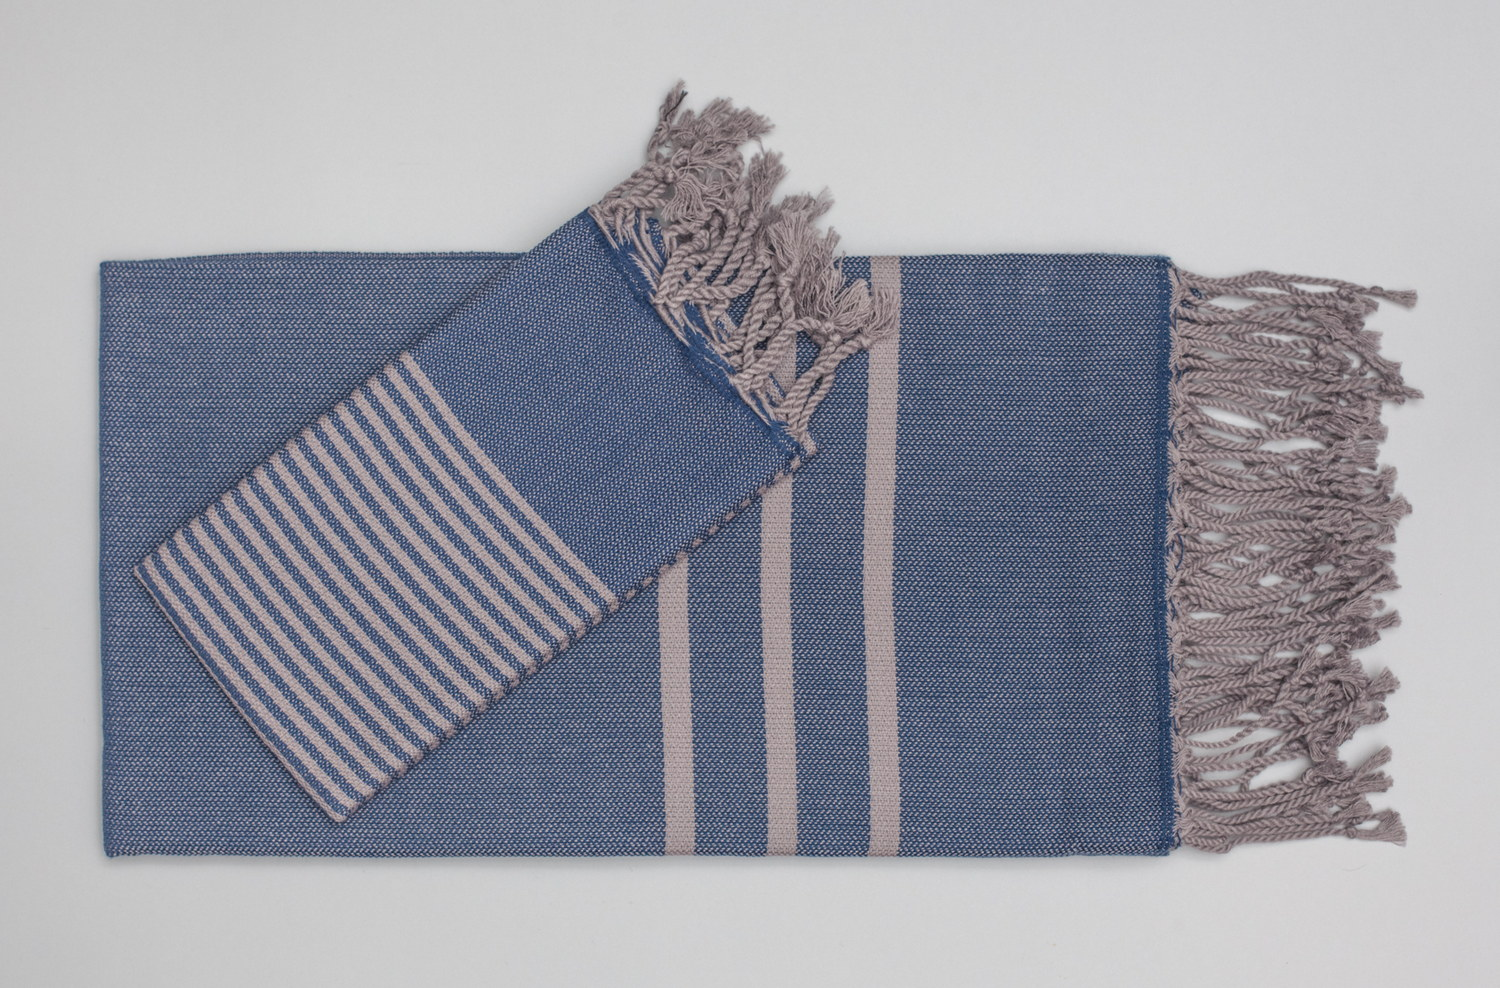 Turkish Hand Towels from Antiochia - blue & grey